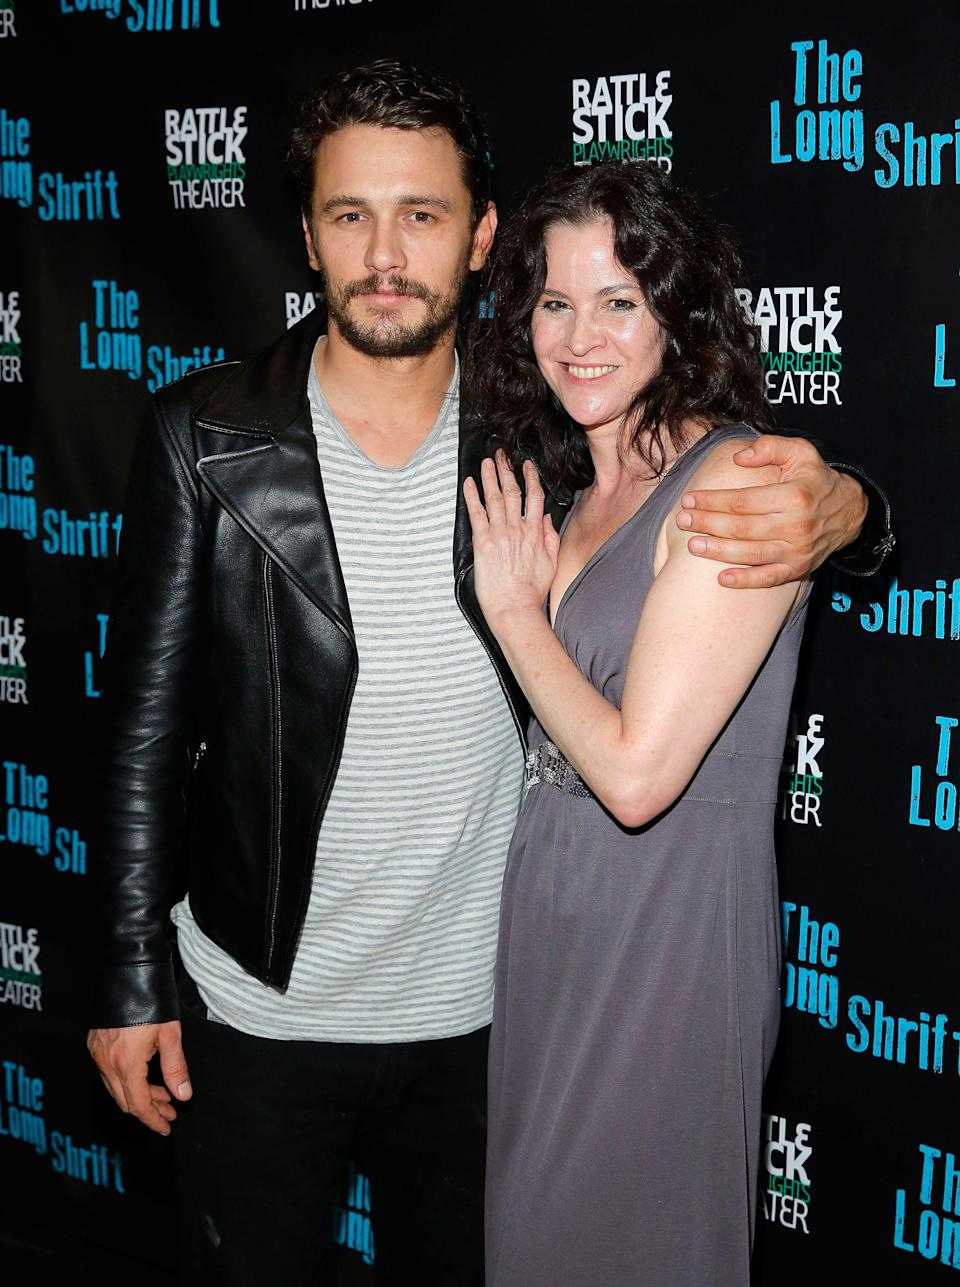 James Franco and Ally Sheedy are all smiles at the after-party for <em>The Long Shrift</em> on July 13, 2014, in New York City. (Photo: J. Countess/Getty Images)